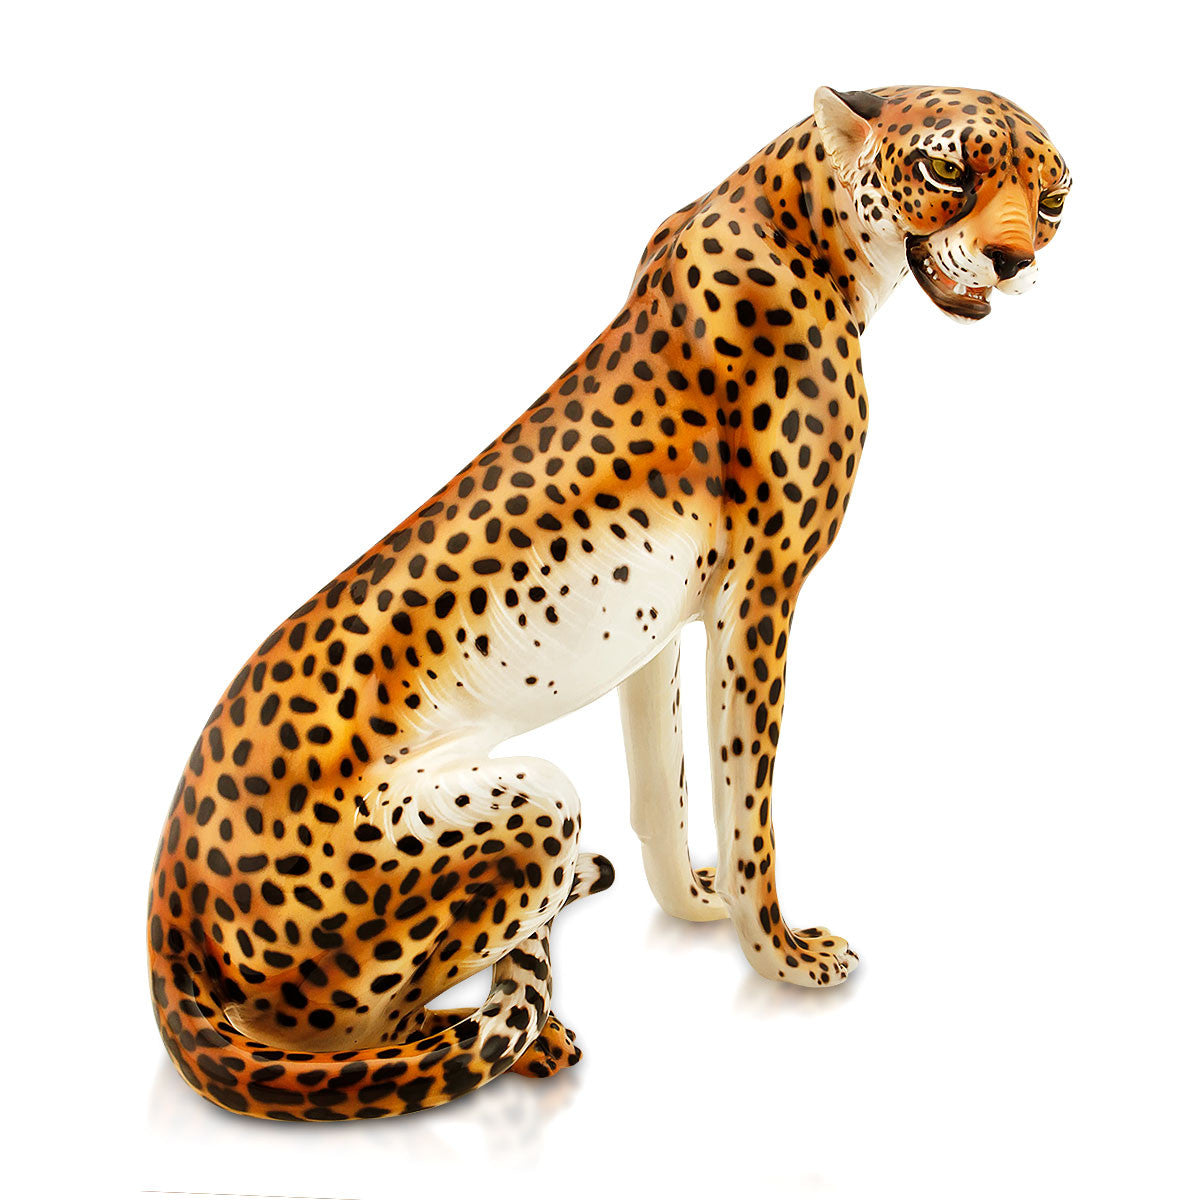 Large ceramic leopard statue with lifelike details